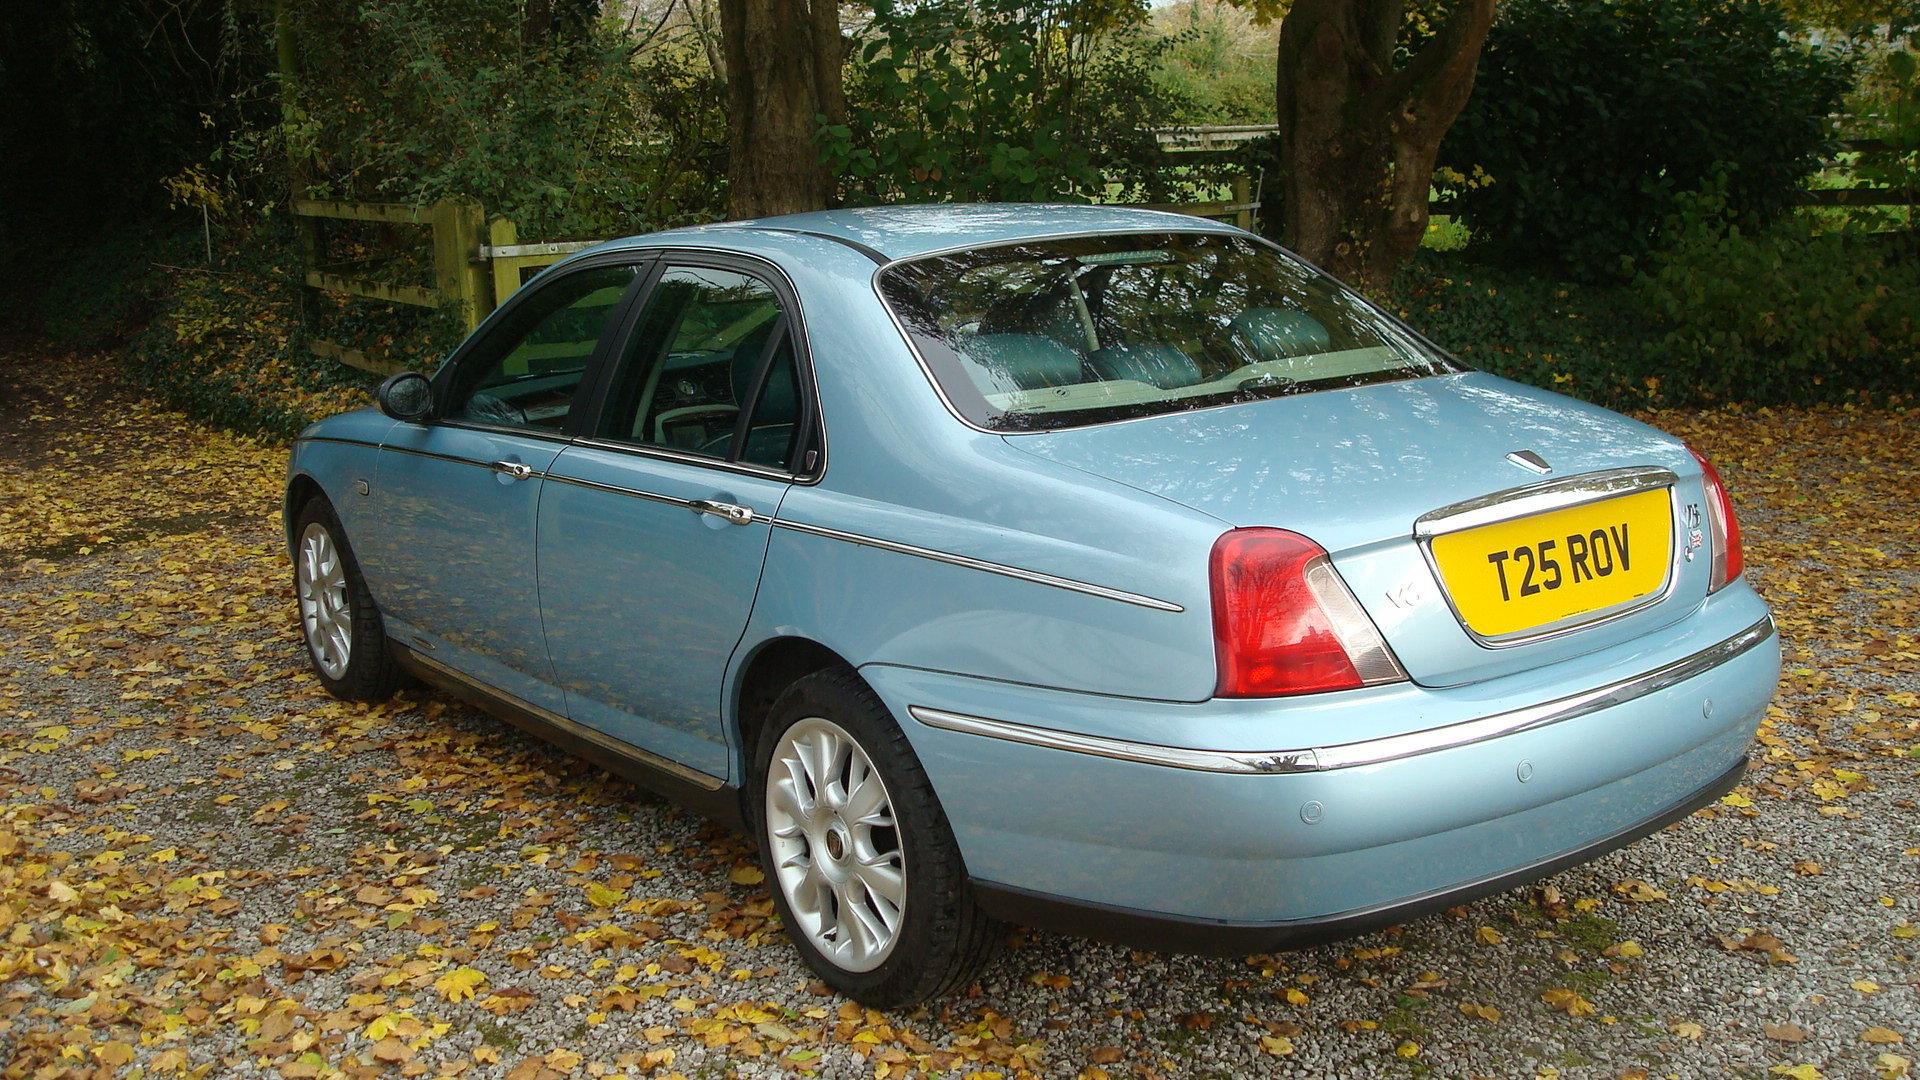 1999 Rover 75 2.5 V6 Connoisseur SE For Sale (picture 3 of 6)